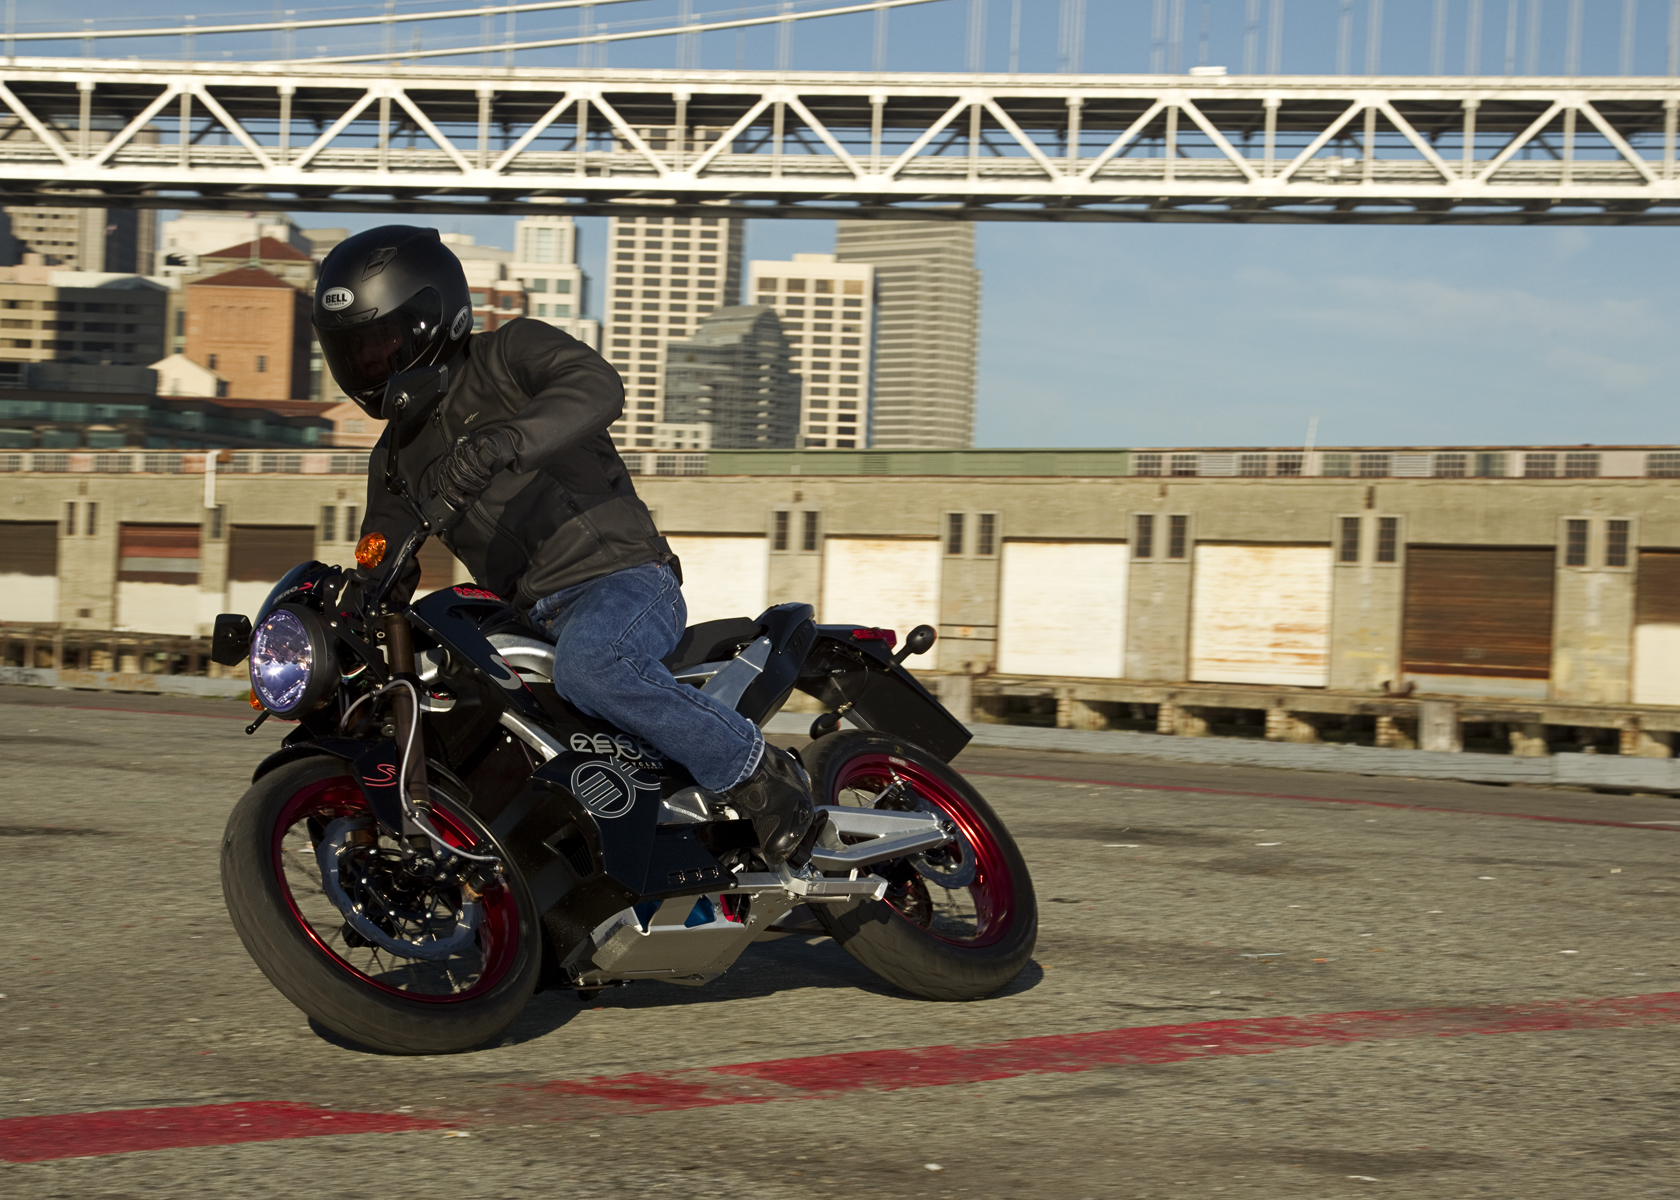 2011 Zero S Electric Motorcycle: Lean Right, City View